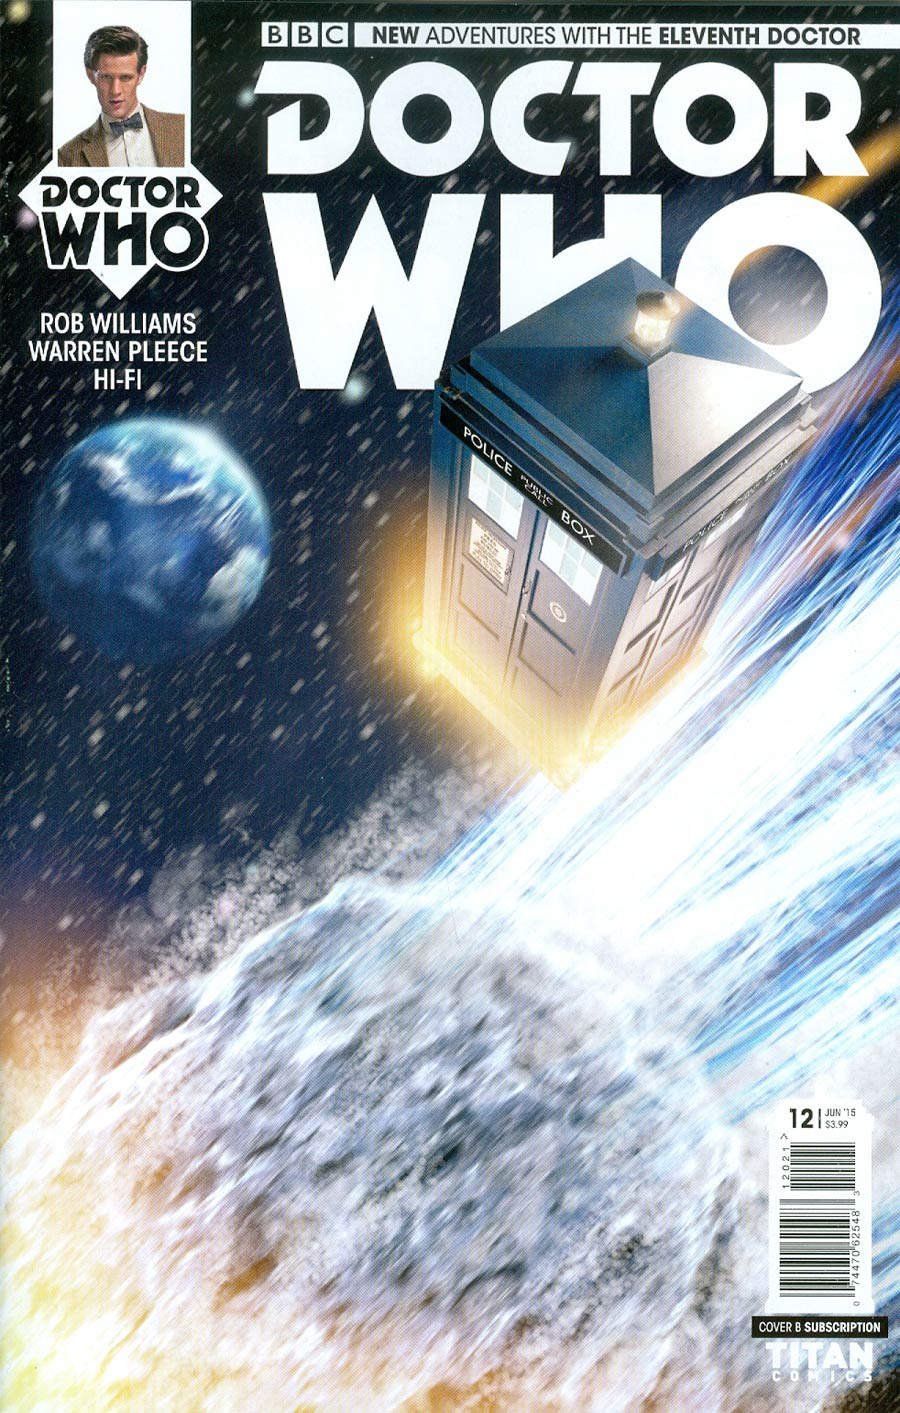 Doctor Who 11th Doctor #12 Cover B Variant Photo Subscription Cover